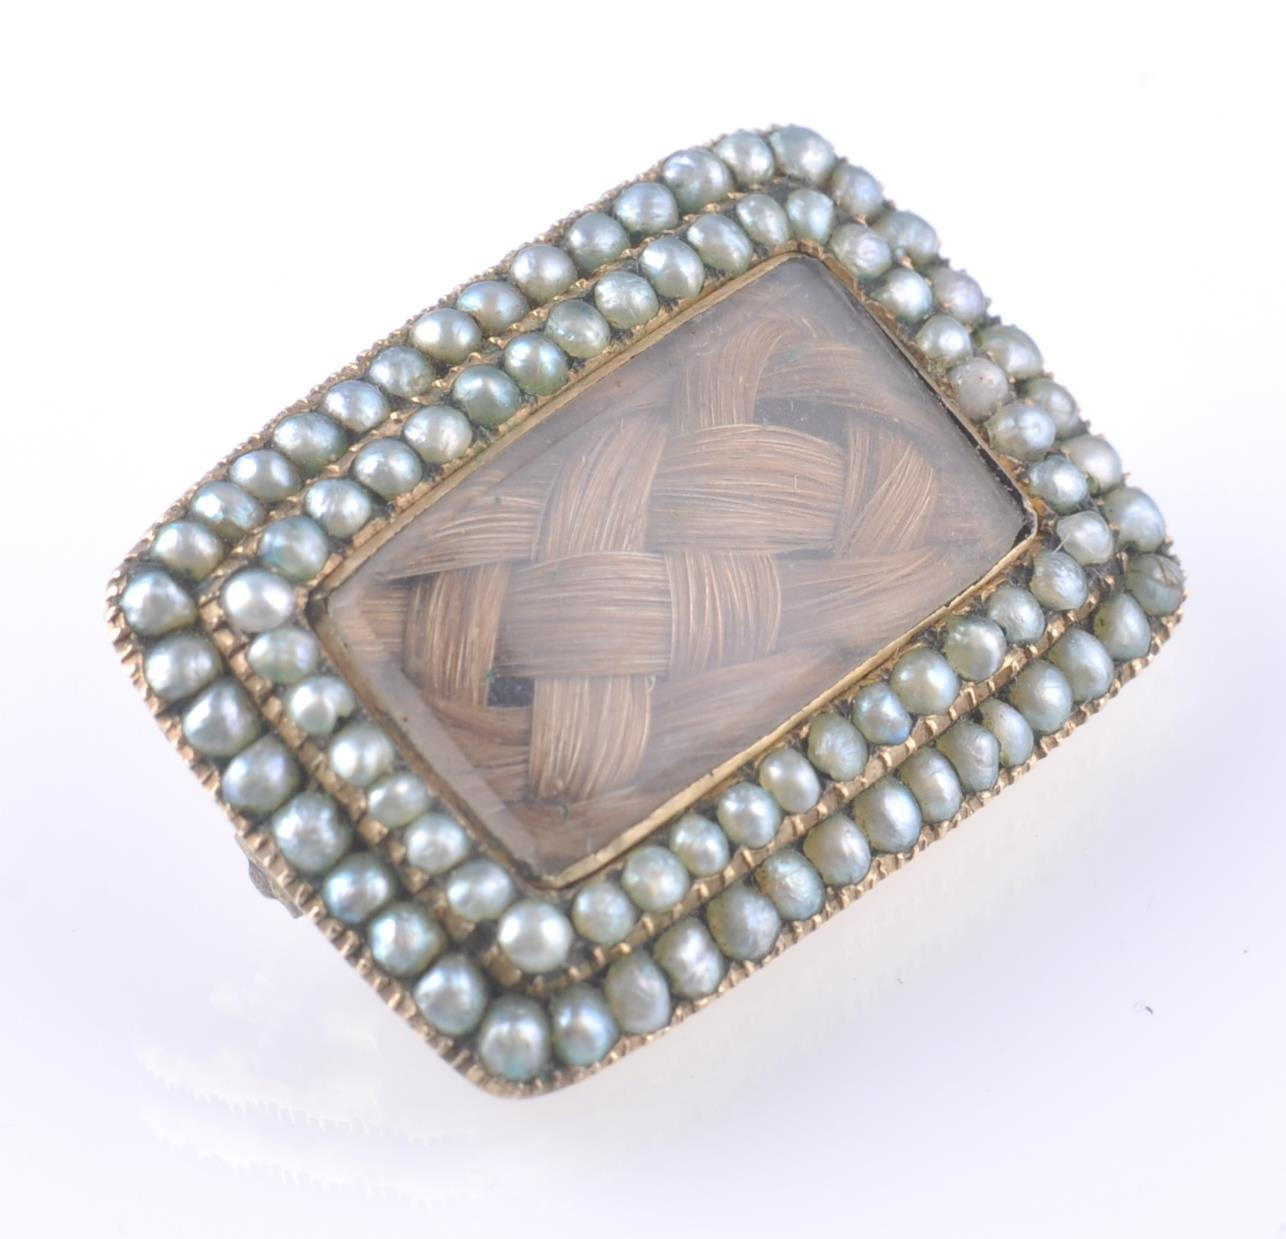 Lot 52 - GEORGIAN GOLD SEED PEARL SET MOURNING BROOCH